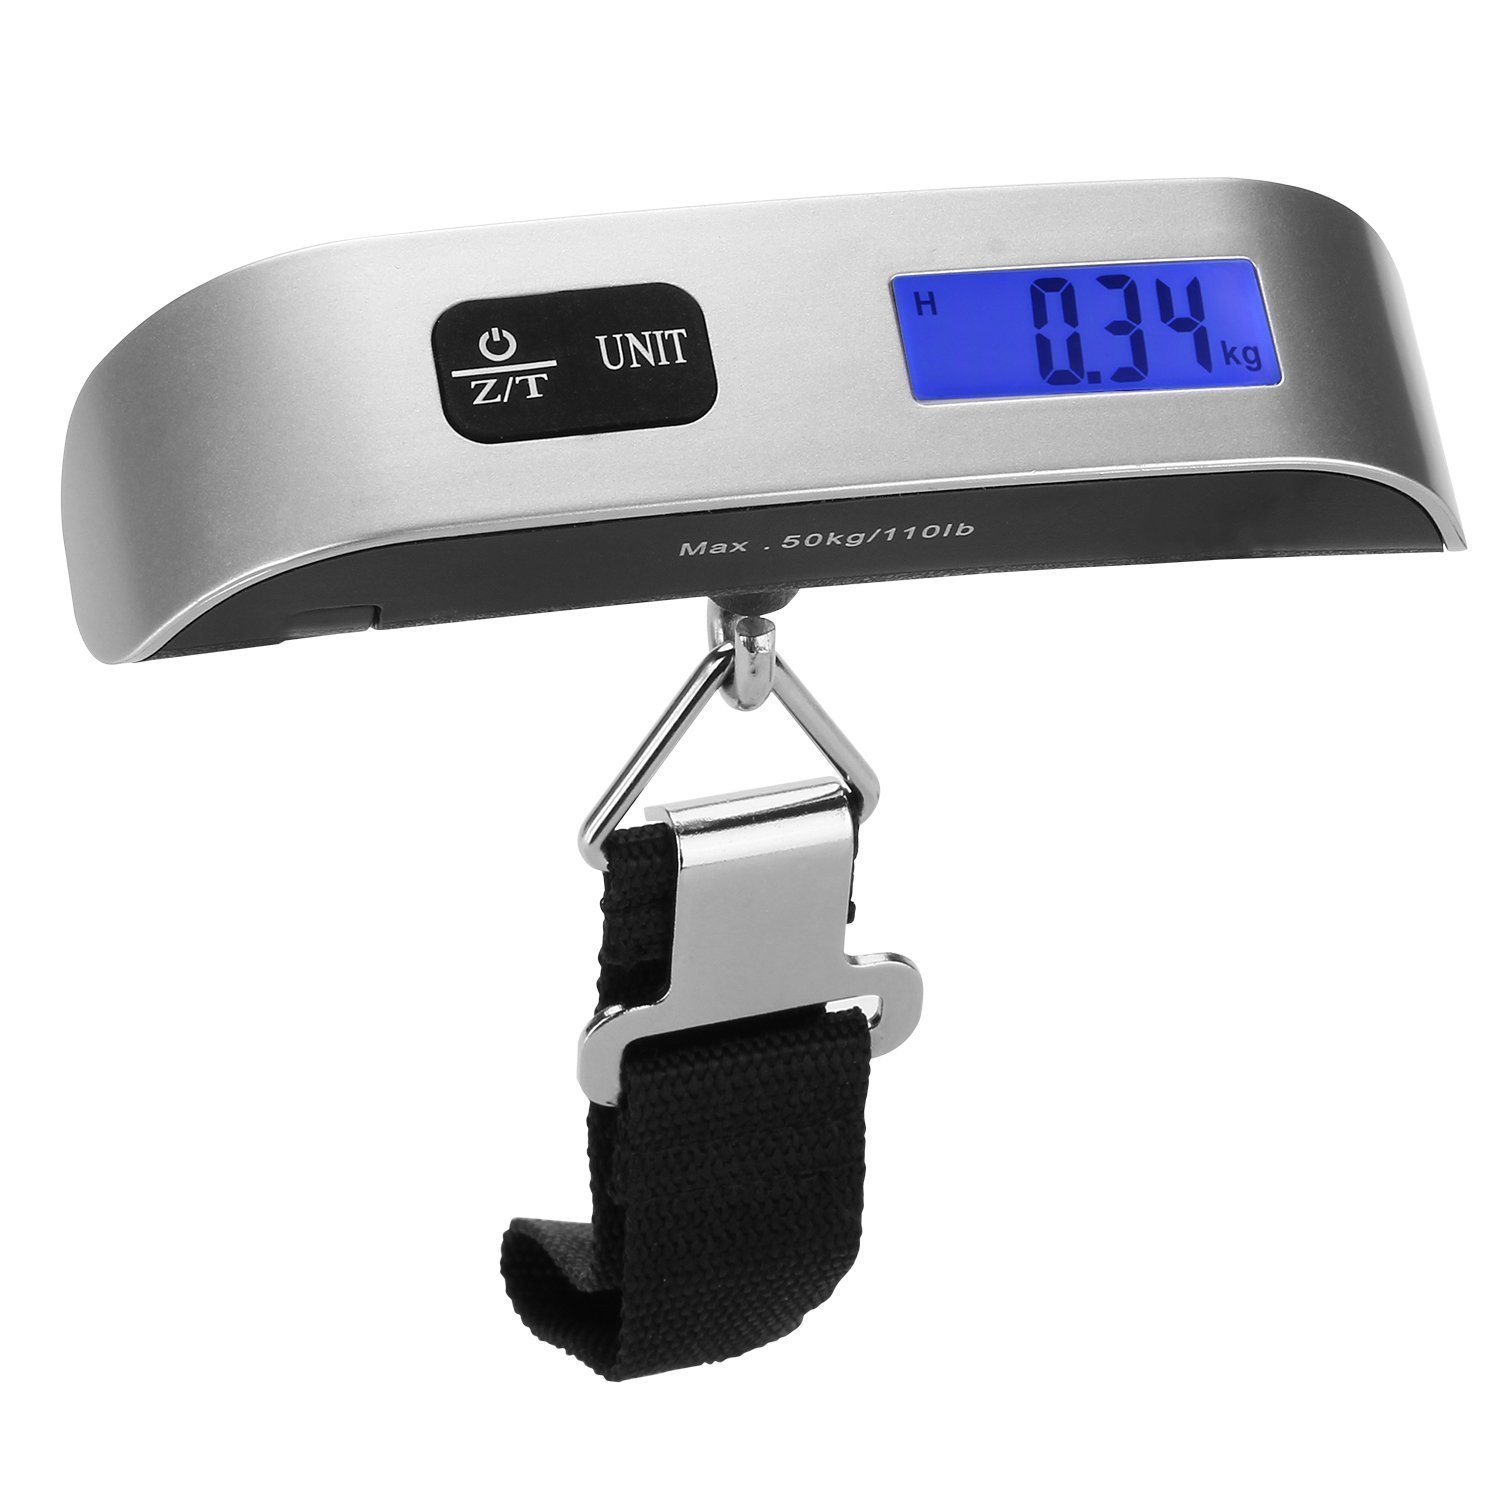 9aa133b34161 Dr.meter Luggage Scale, 50Kg/10g 110LB Stainless Steel Hanging Handheld  Travel Pocket Scale with Rubber Paint Handle, Temperature Sensor,  Silver/Black